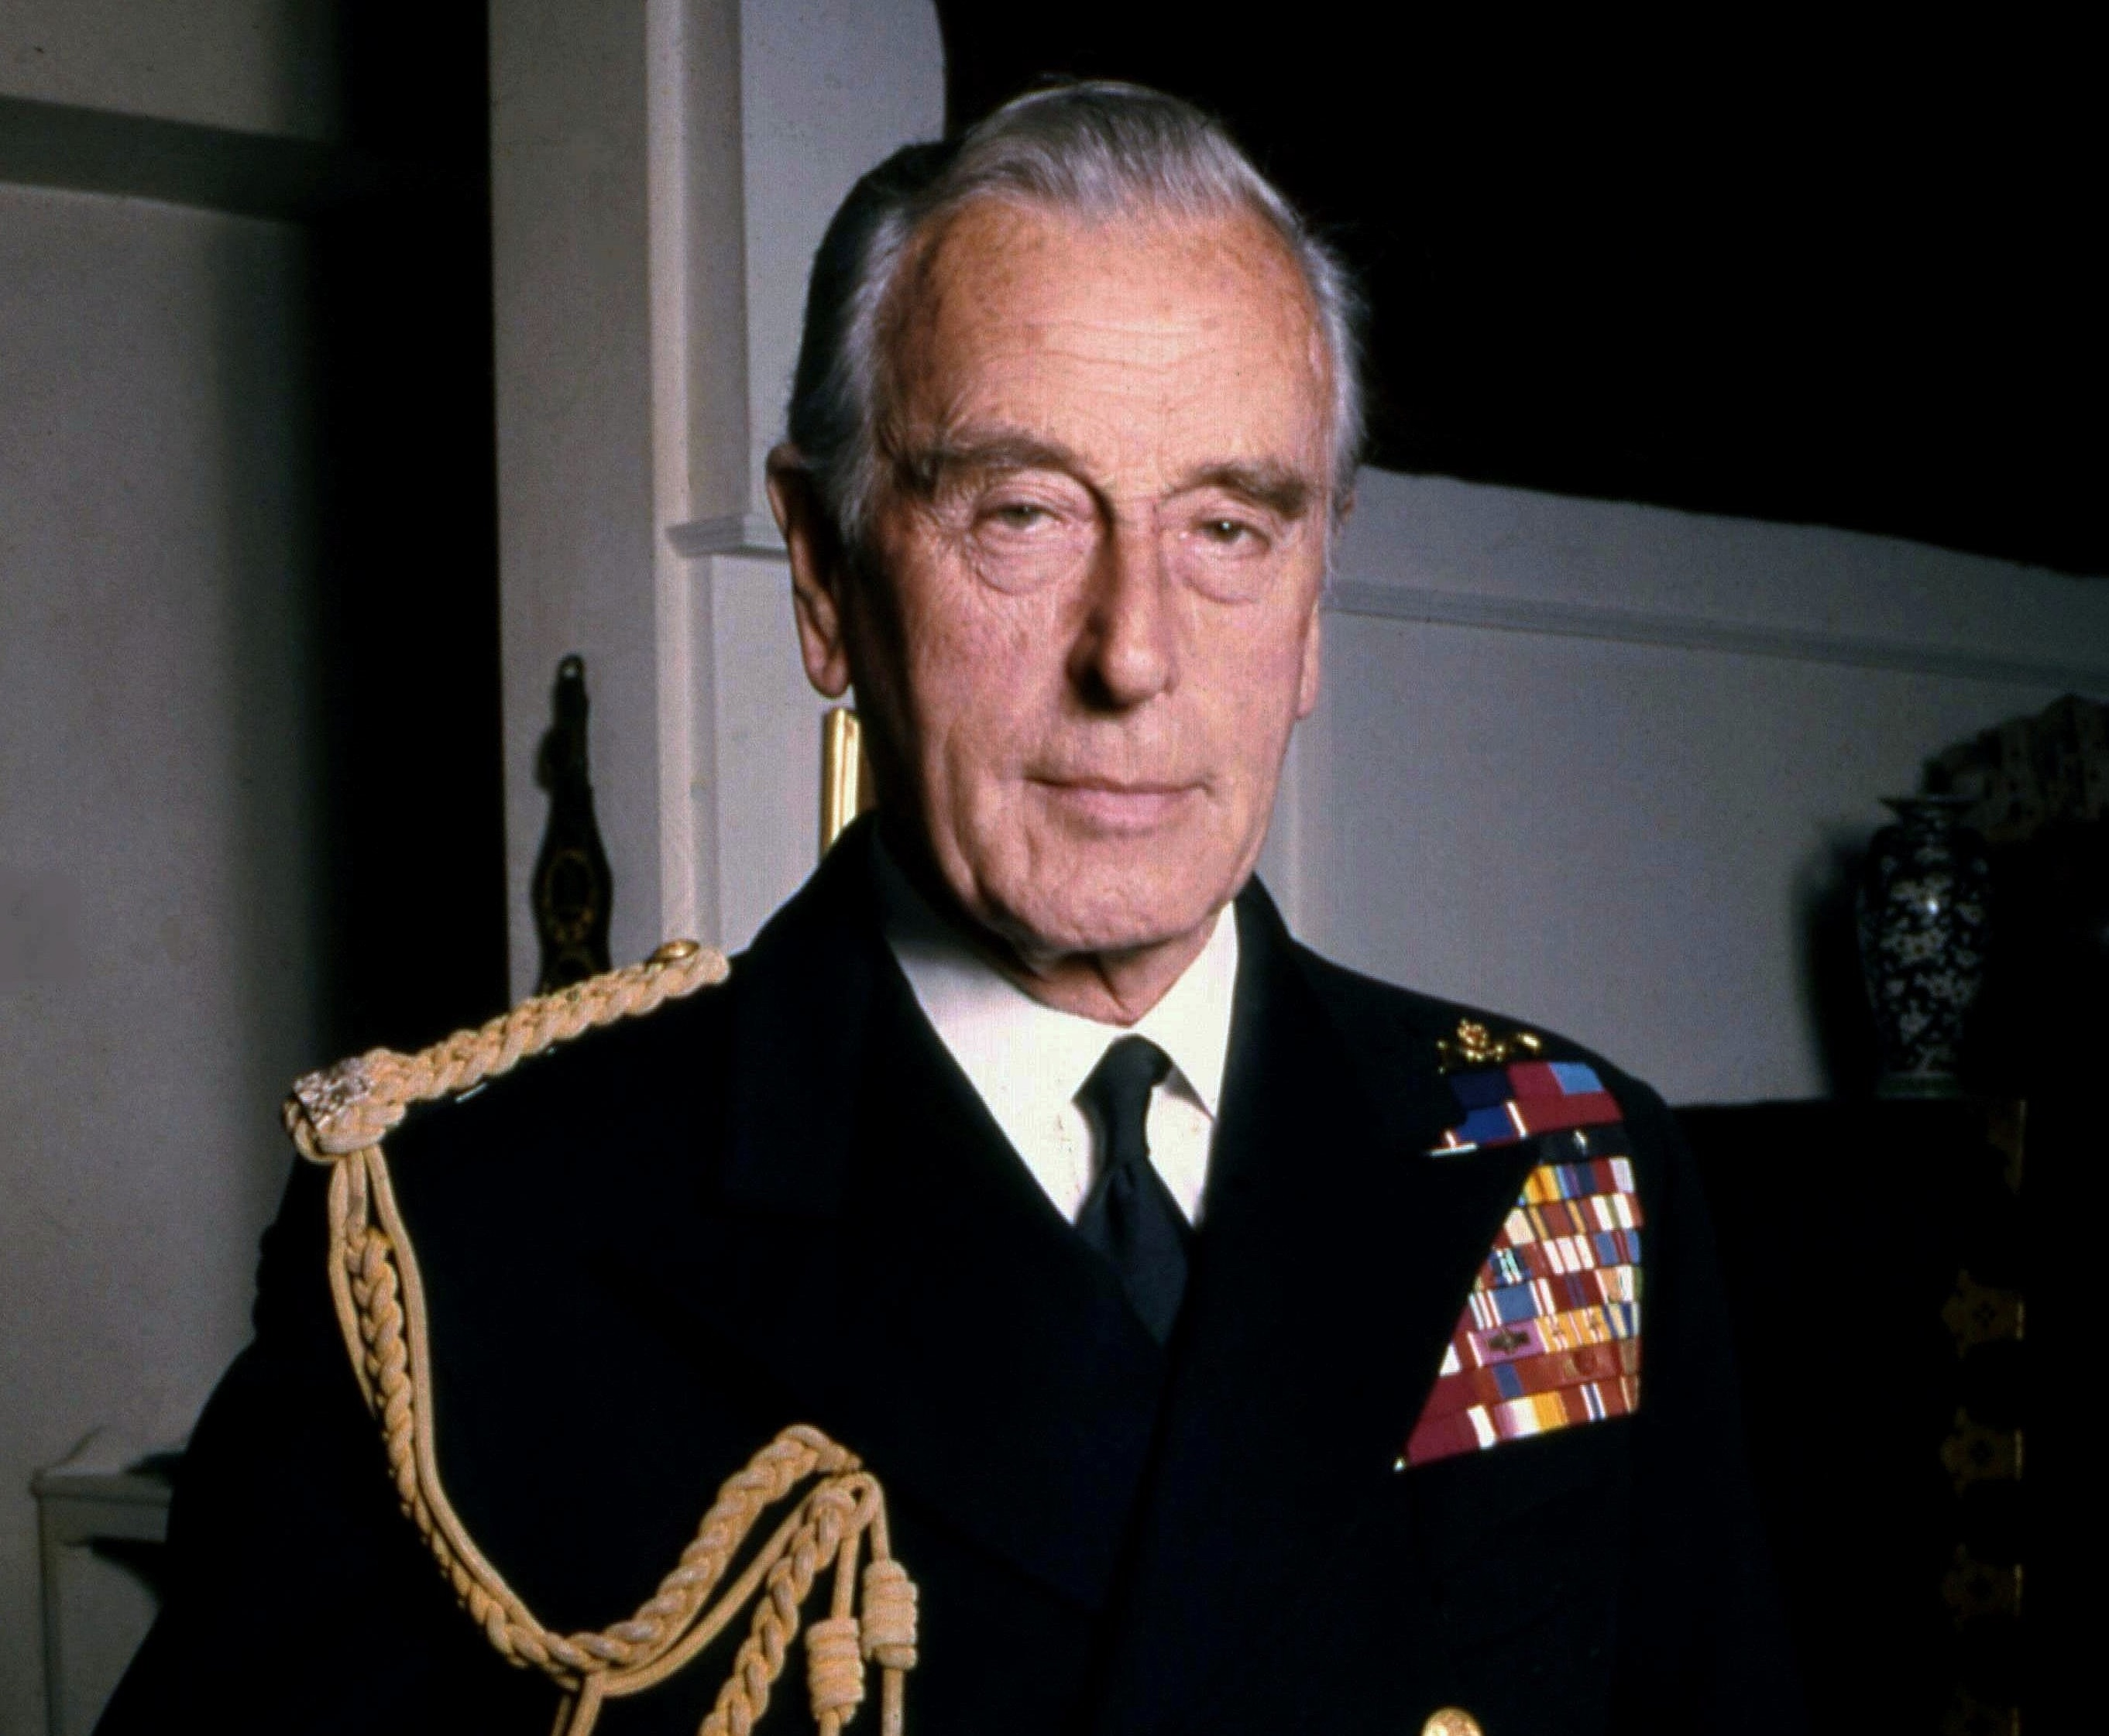 Second Update Kincora Boy Abused By Mountbatten Committed Suicide Months Later Village Magazine